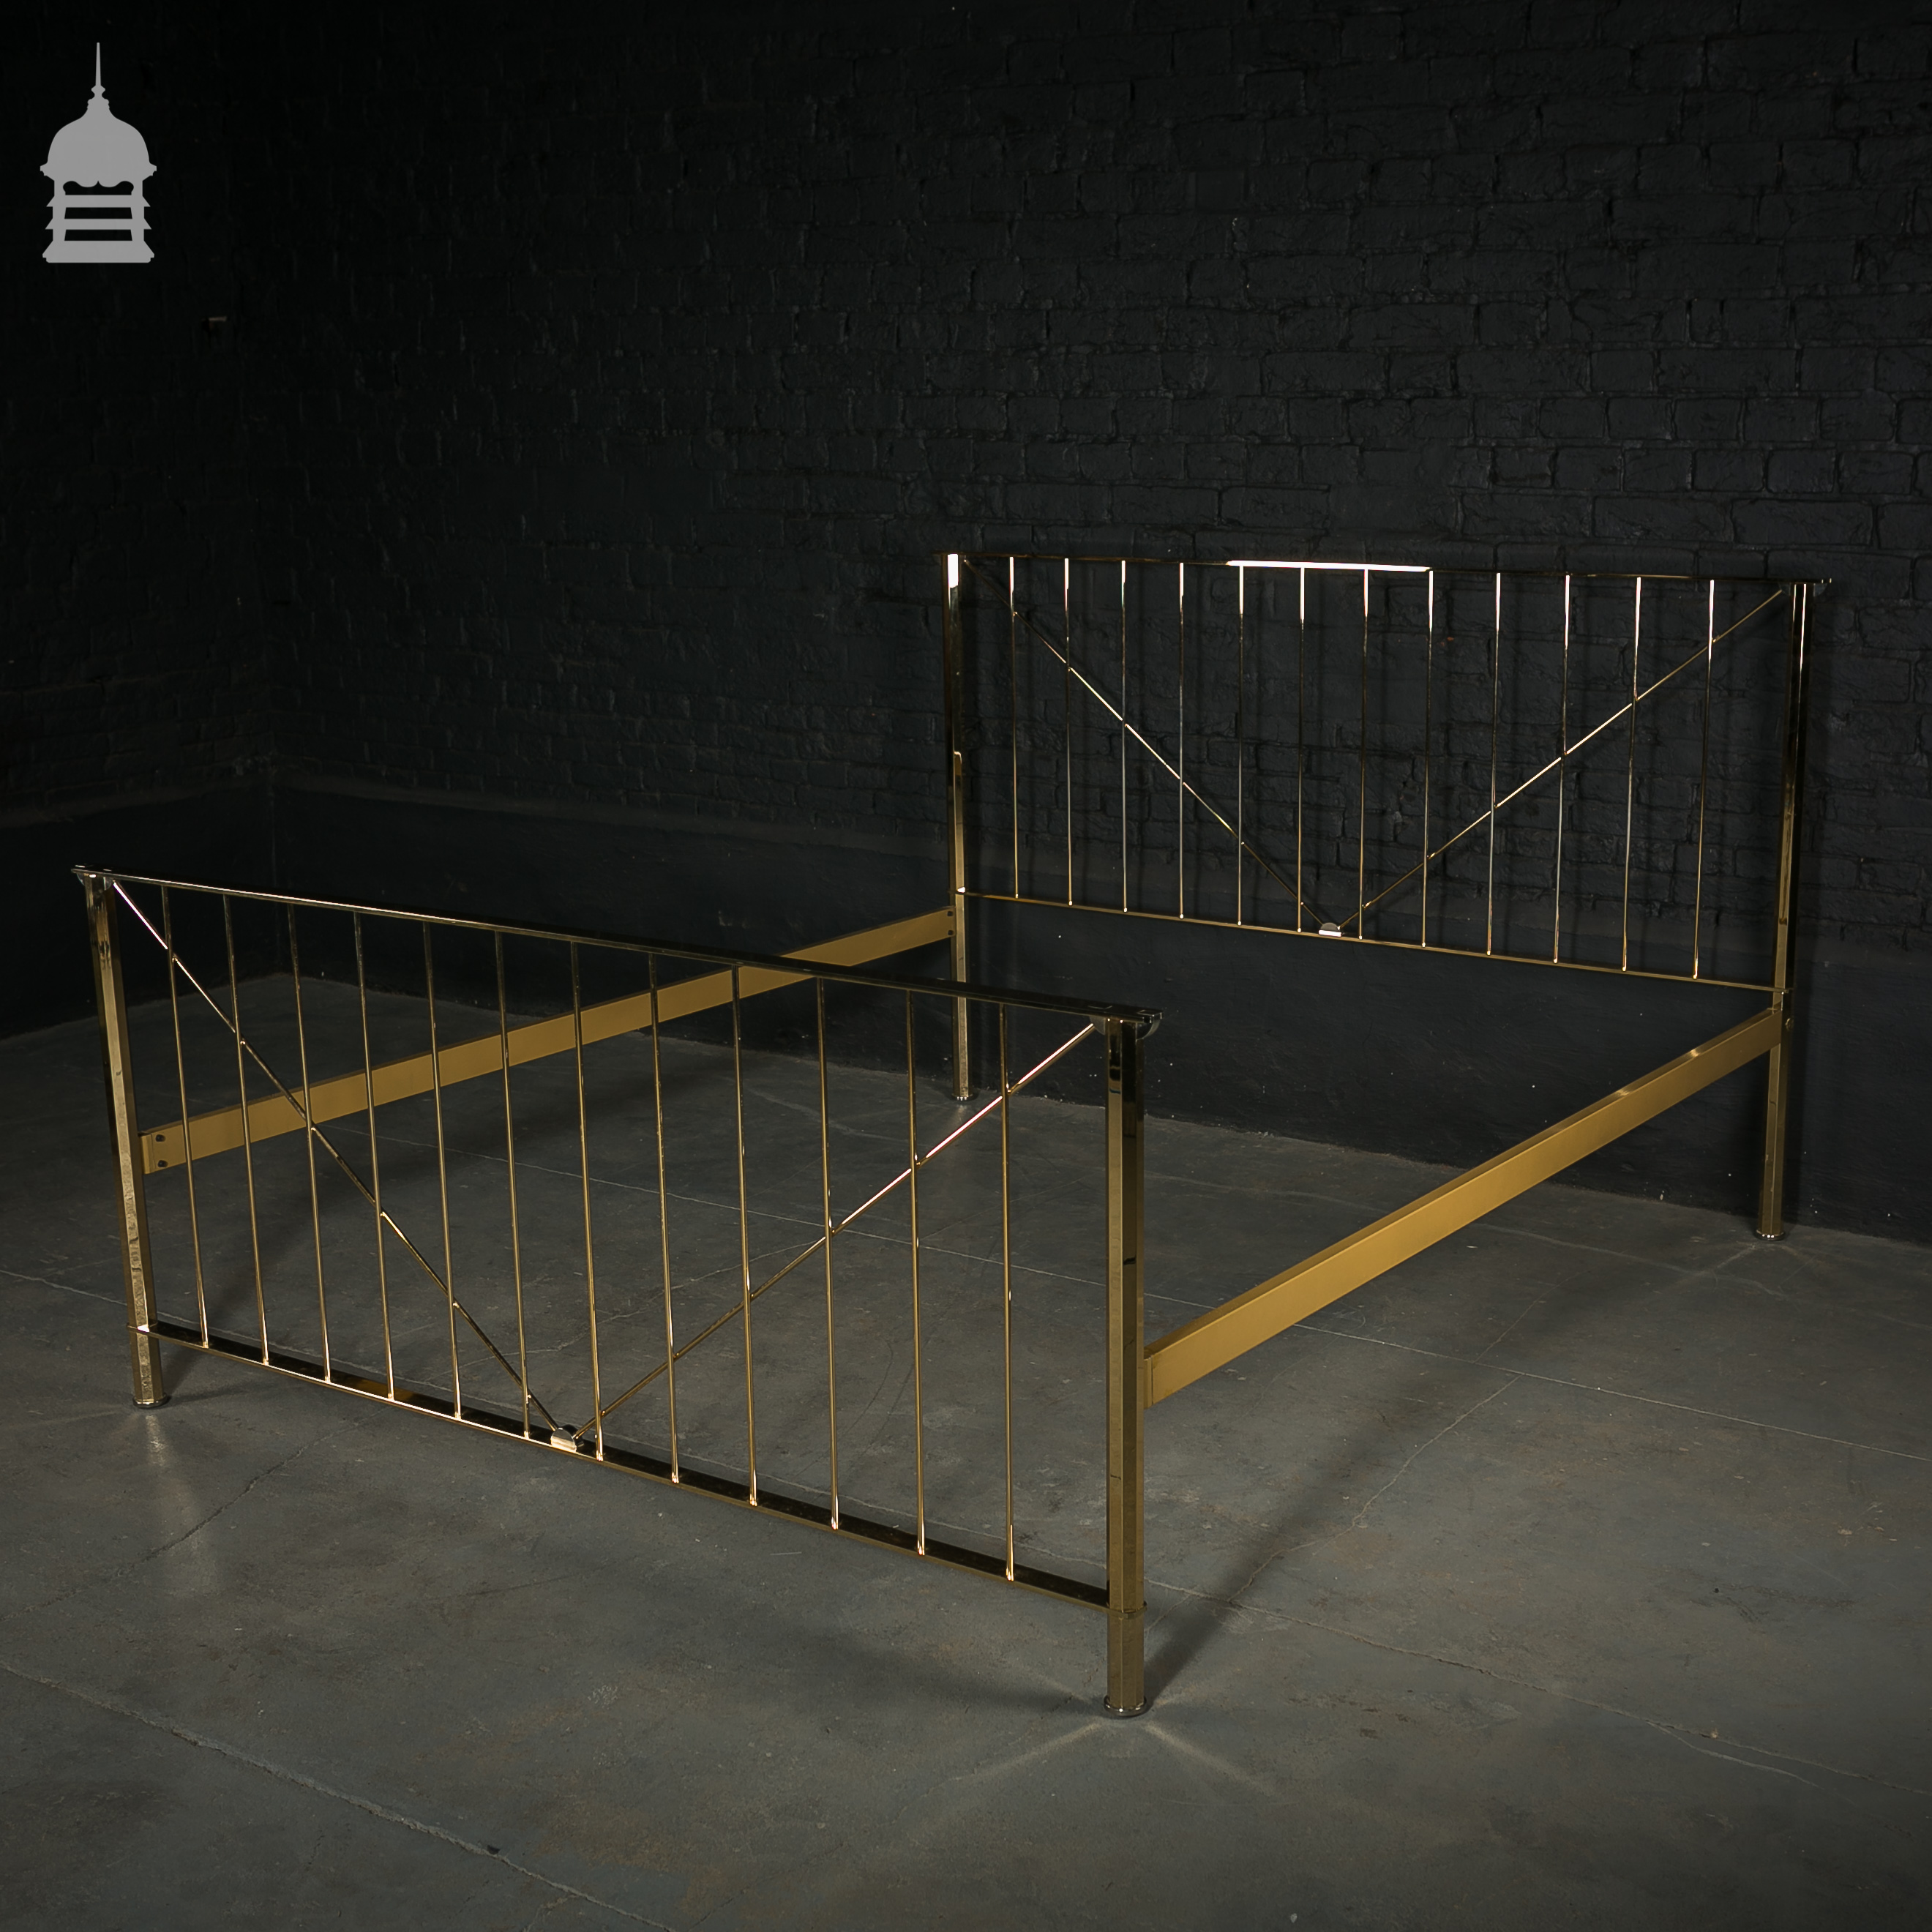 22 Carat Gold Plated Bed Frame Salvaged from a Home in Knightsbridge